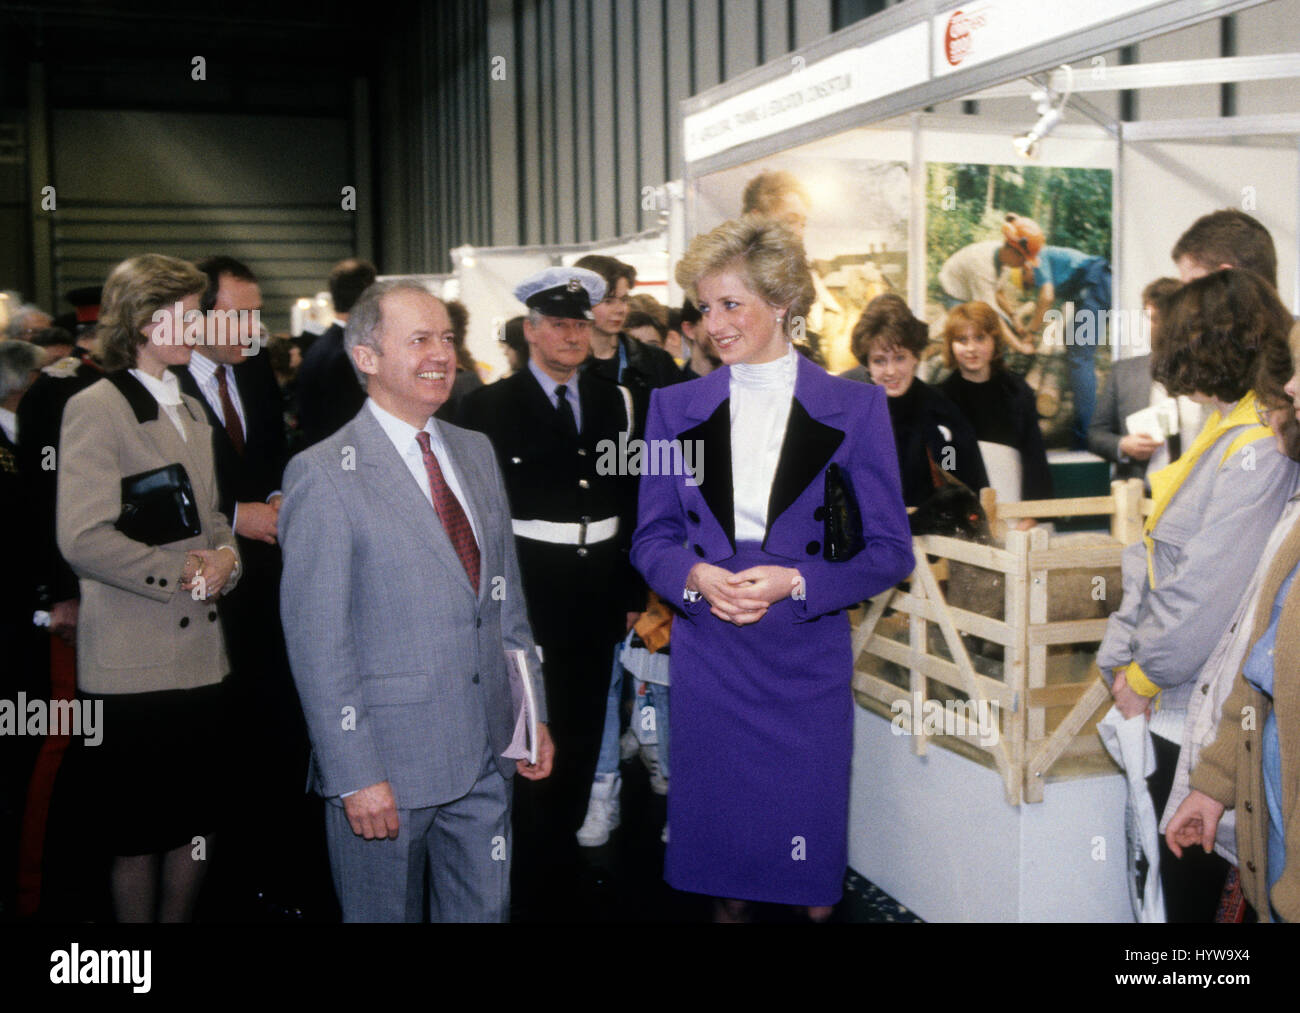 Princess Diana 1990 High Resolution Stock Photography And Images Alamy,American Airlines Baggage Allowance To Mexico